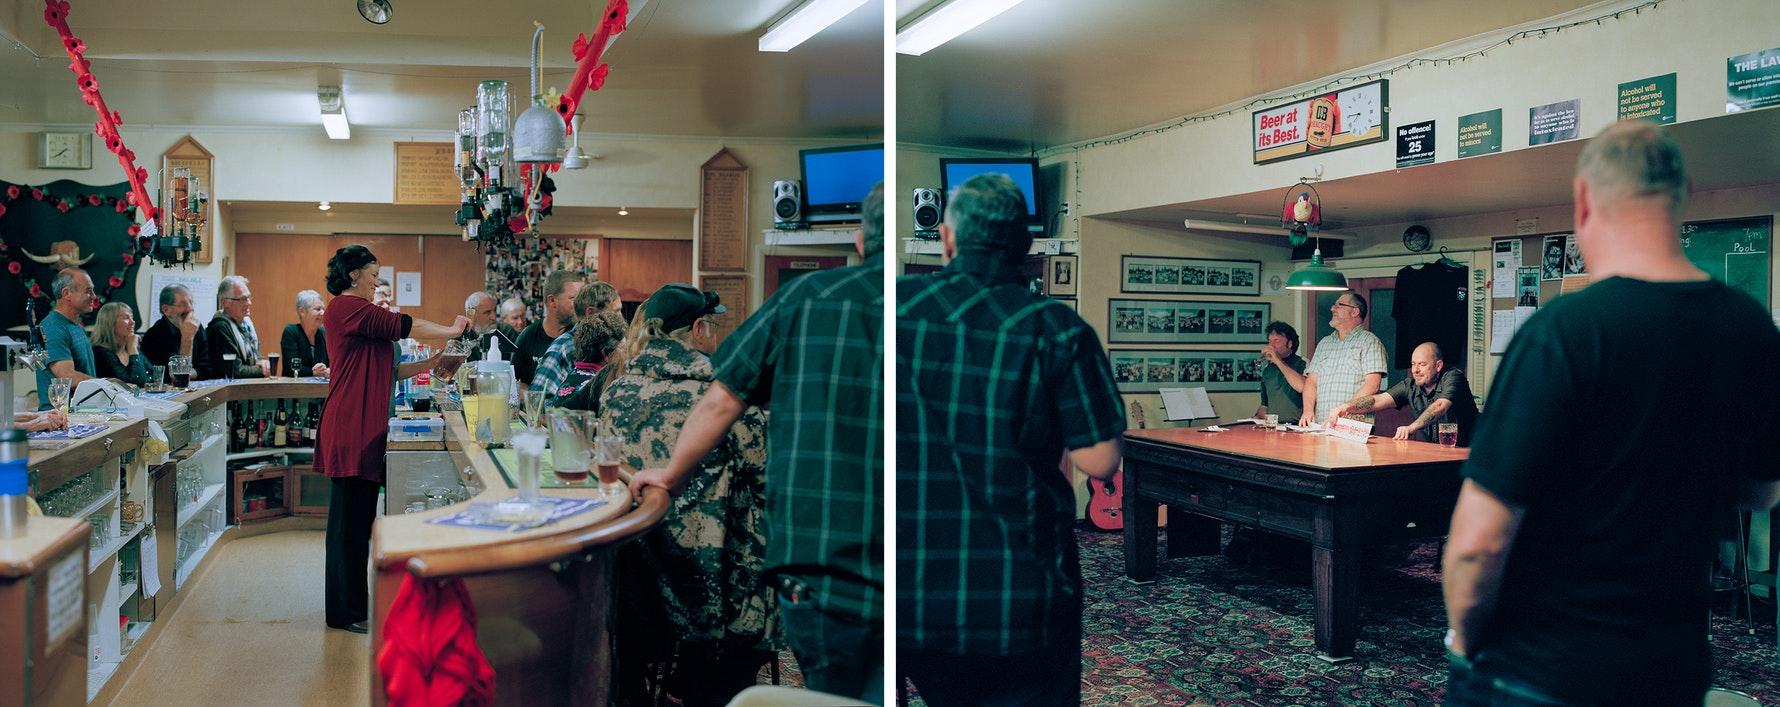 Mayday Debate, Blackball Workingmens Club, 2016